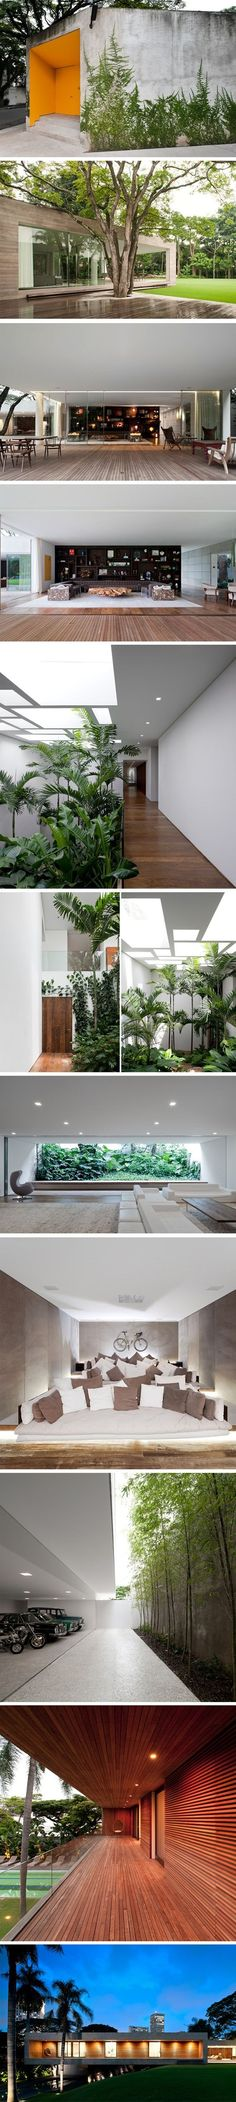 Integration of nature into architecture